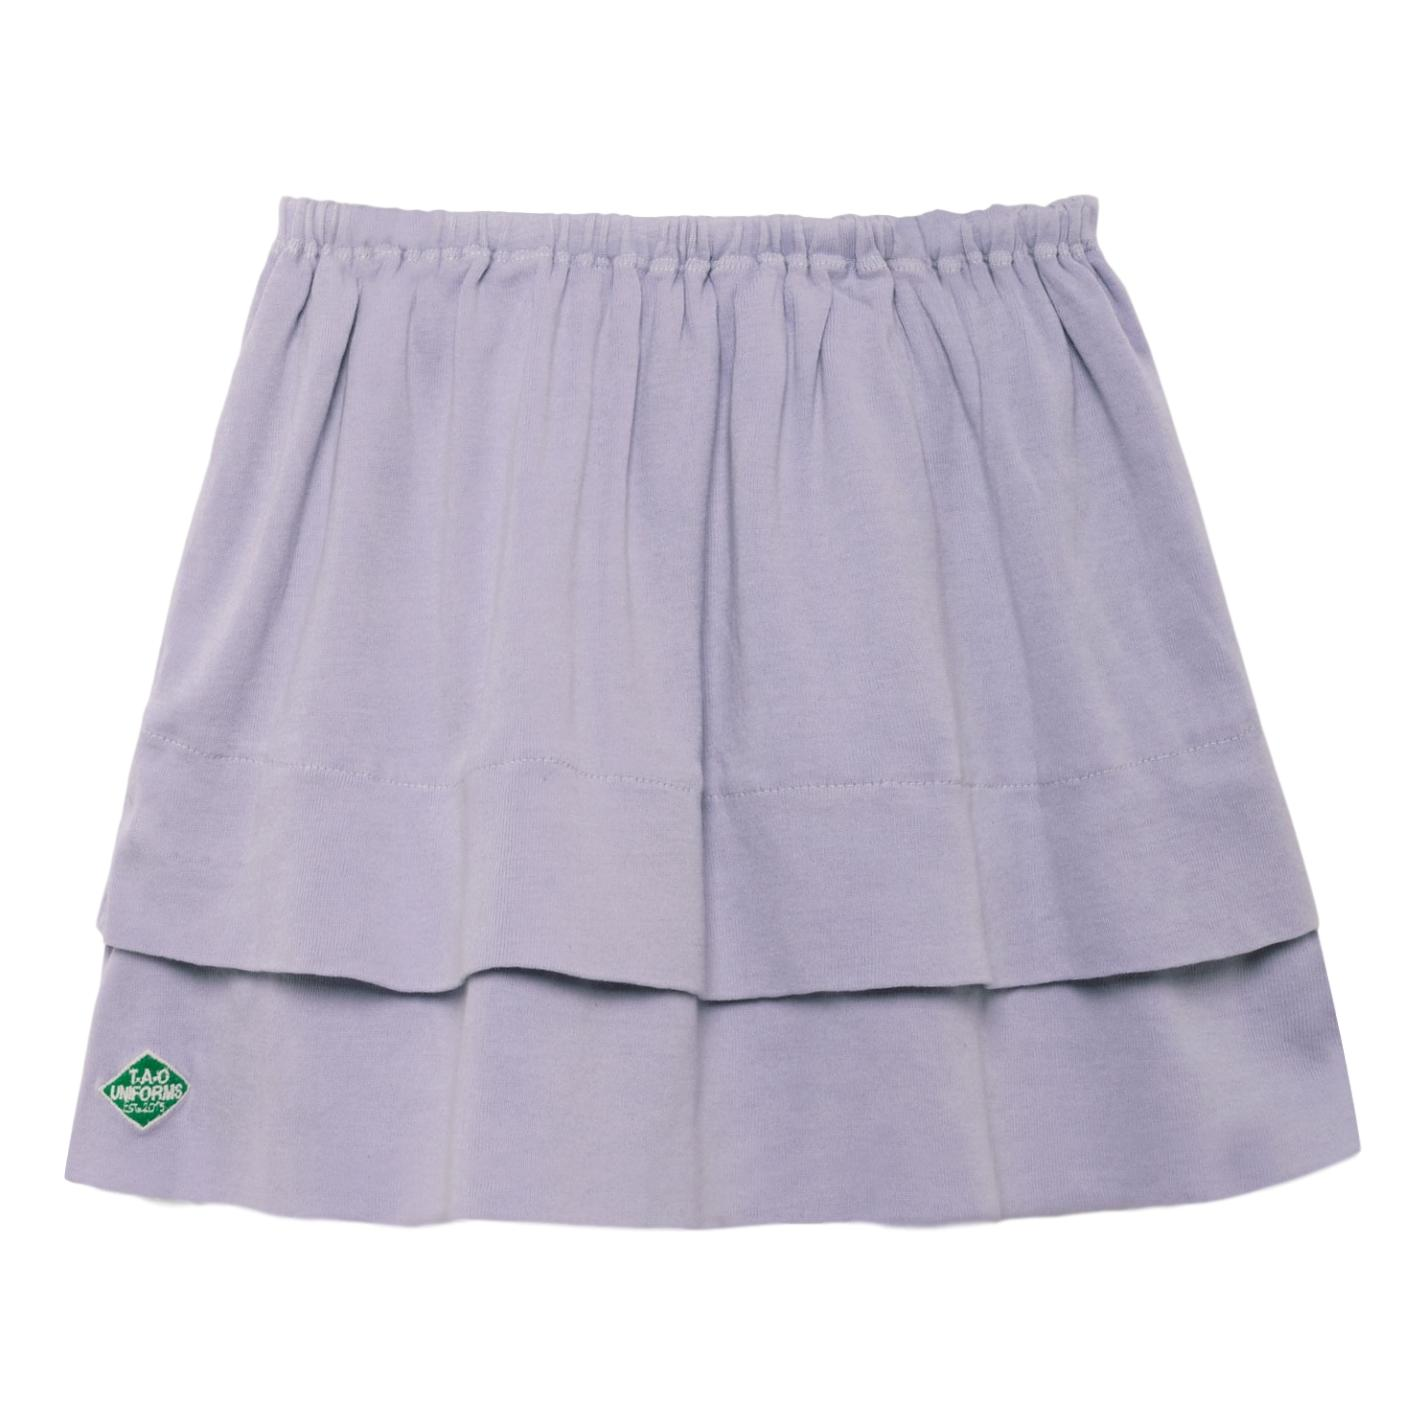 THE ANIMALS OBSERVATORY - Lavand TAO Uniforms Seamstress Skirt